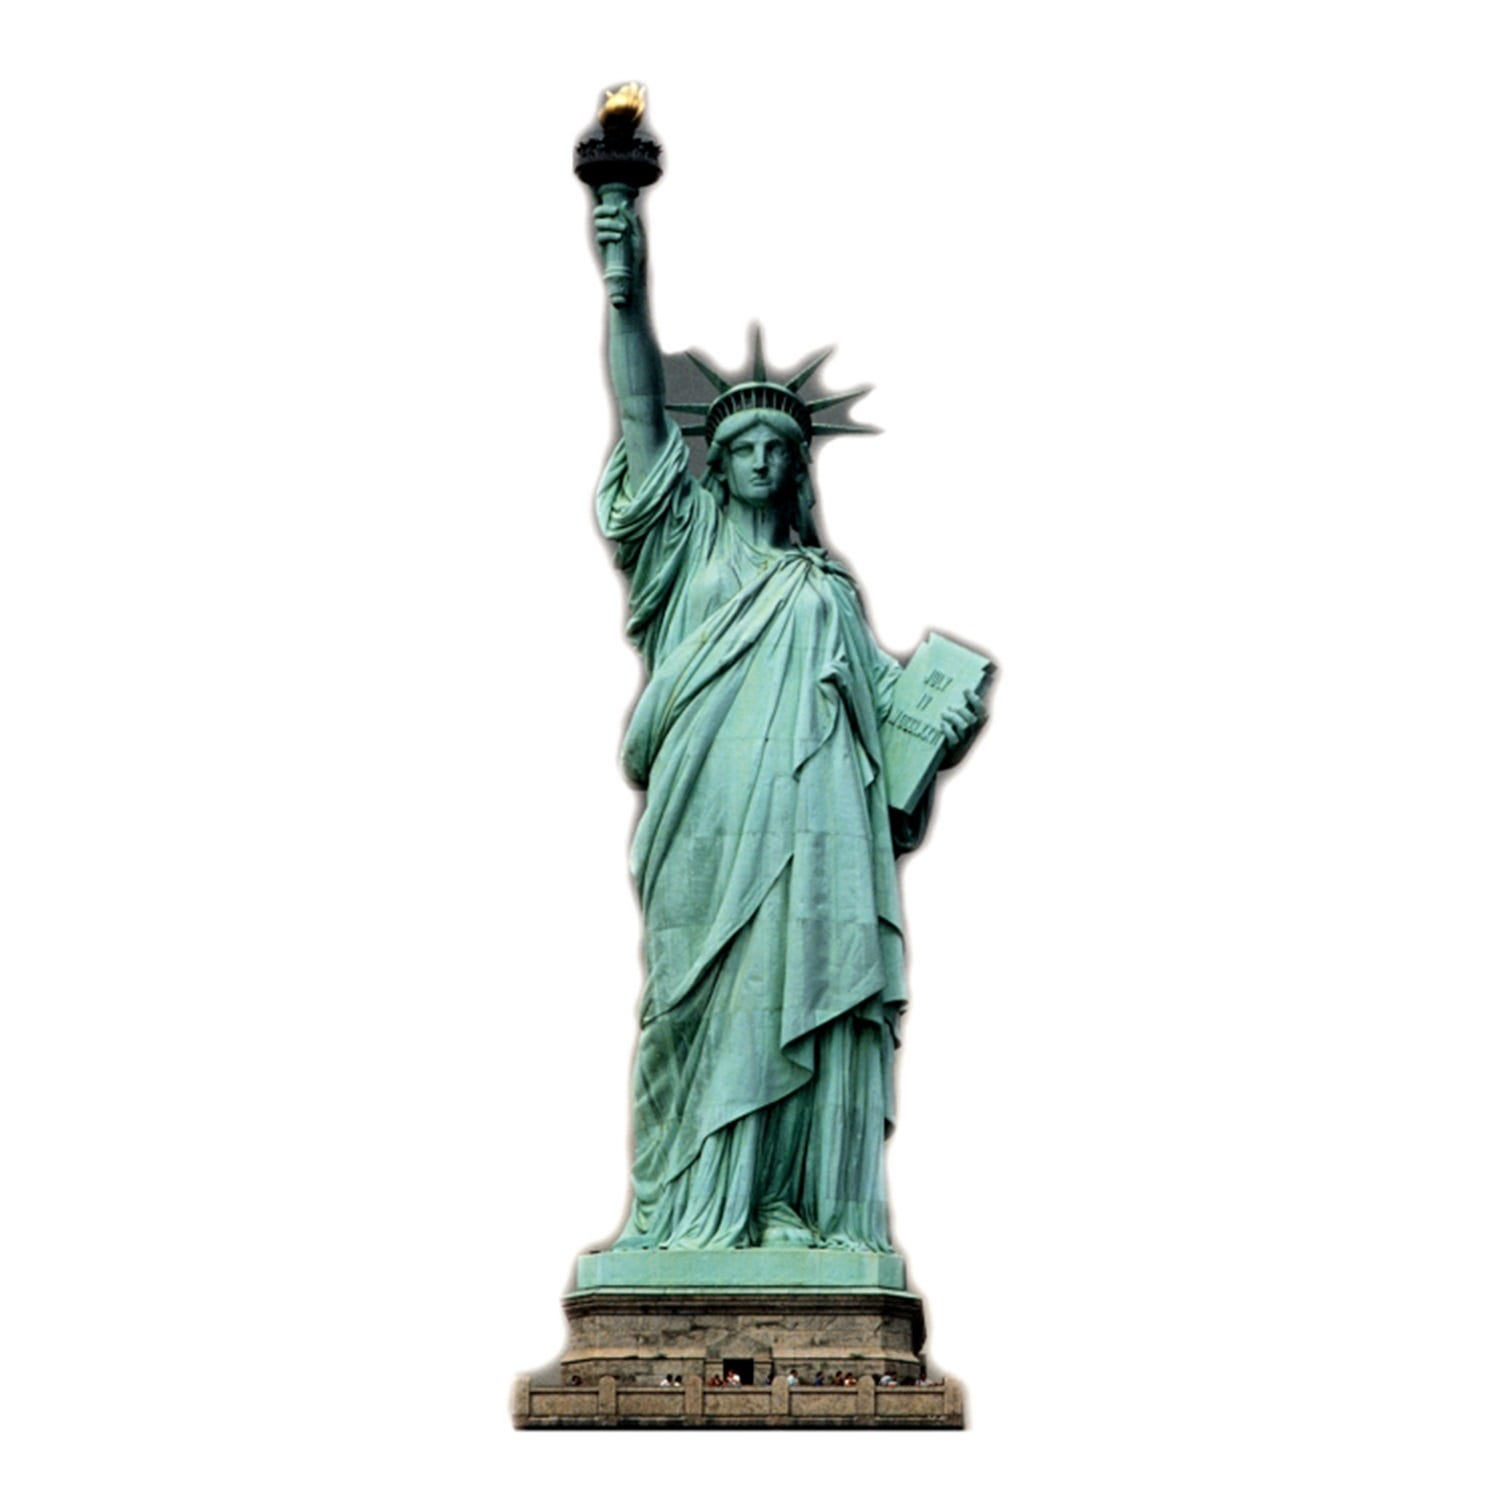 lets stand up for liberty Thy liberty in law let the hero, born of woman, crush and i gladly stand up next to you and defend her still today, 'cause there ain't no doubt i love this land.